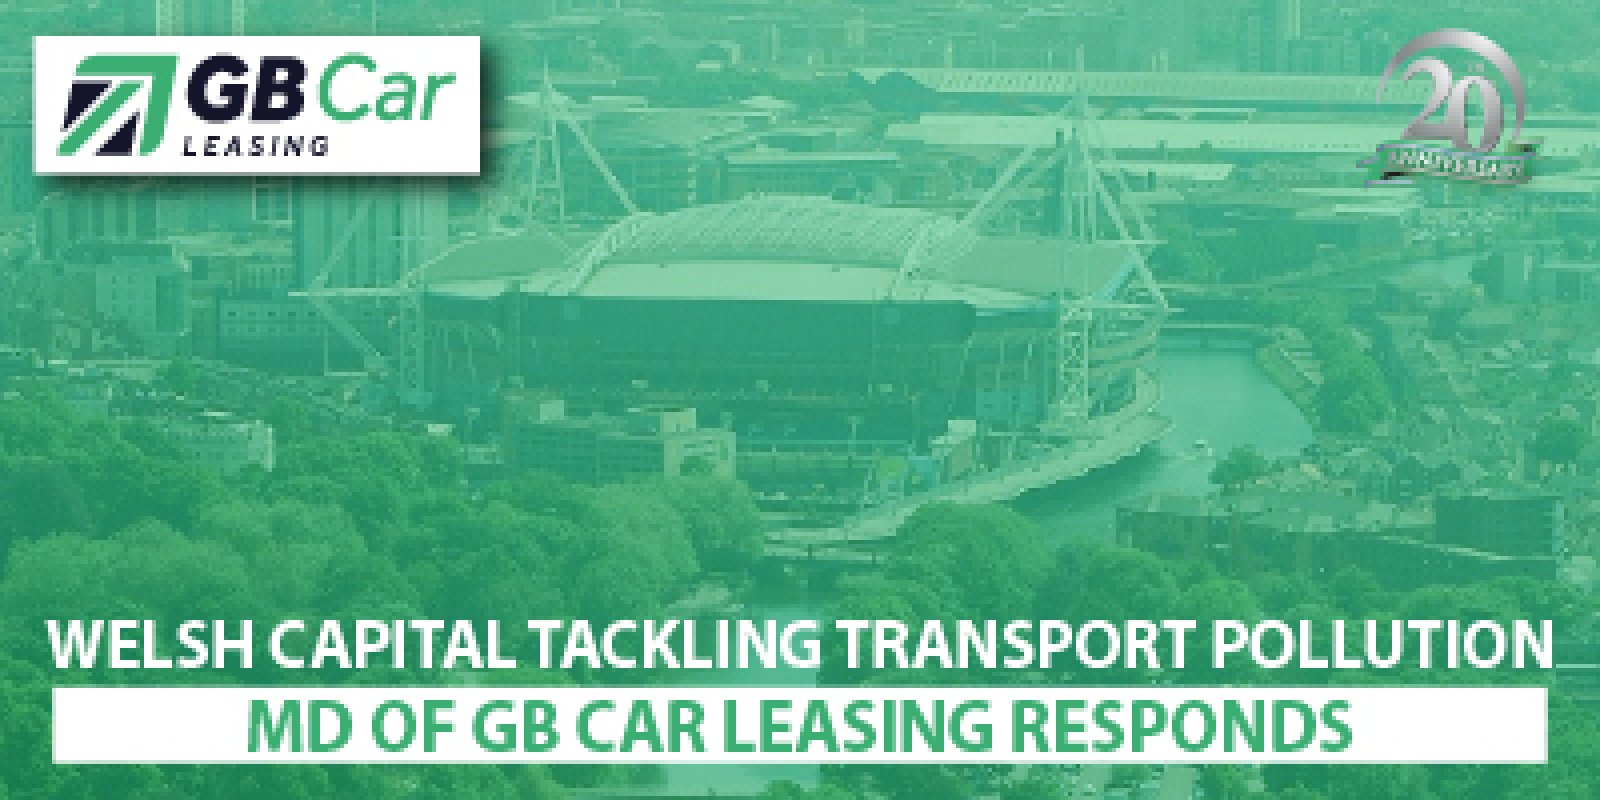 Cardiff's New Transport Research Network Receives Funding to Turn Vehicles Green